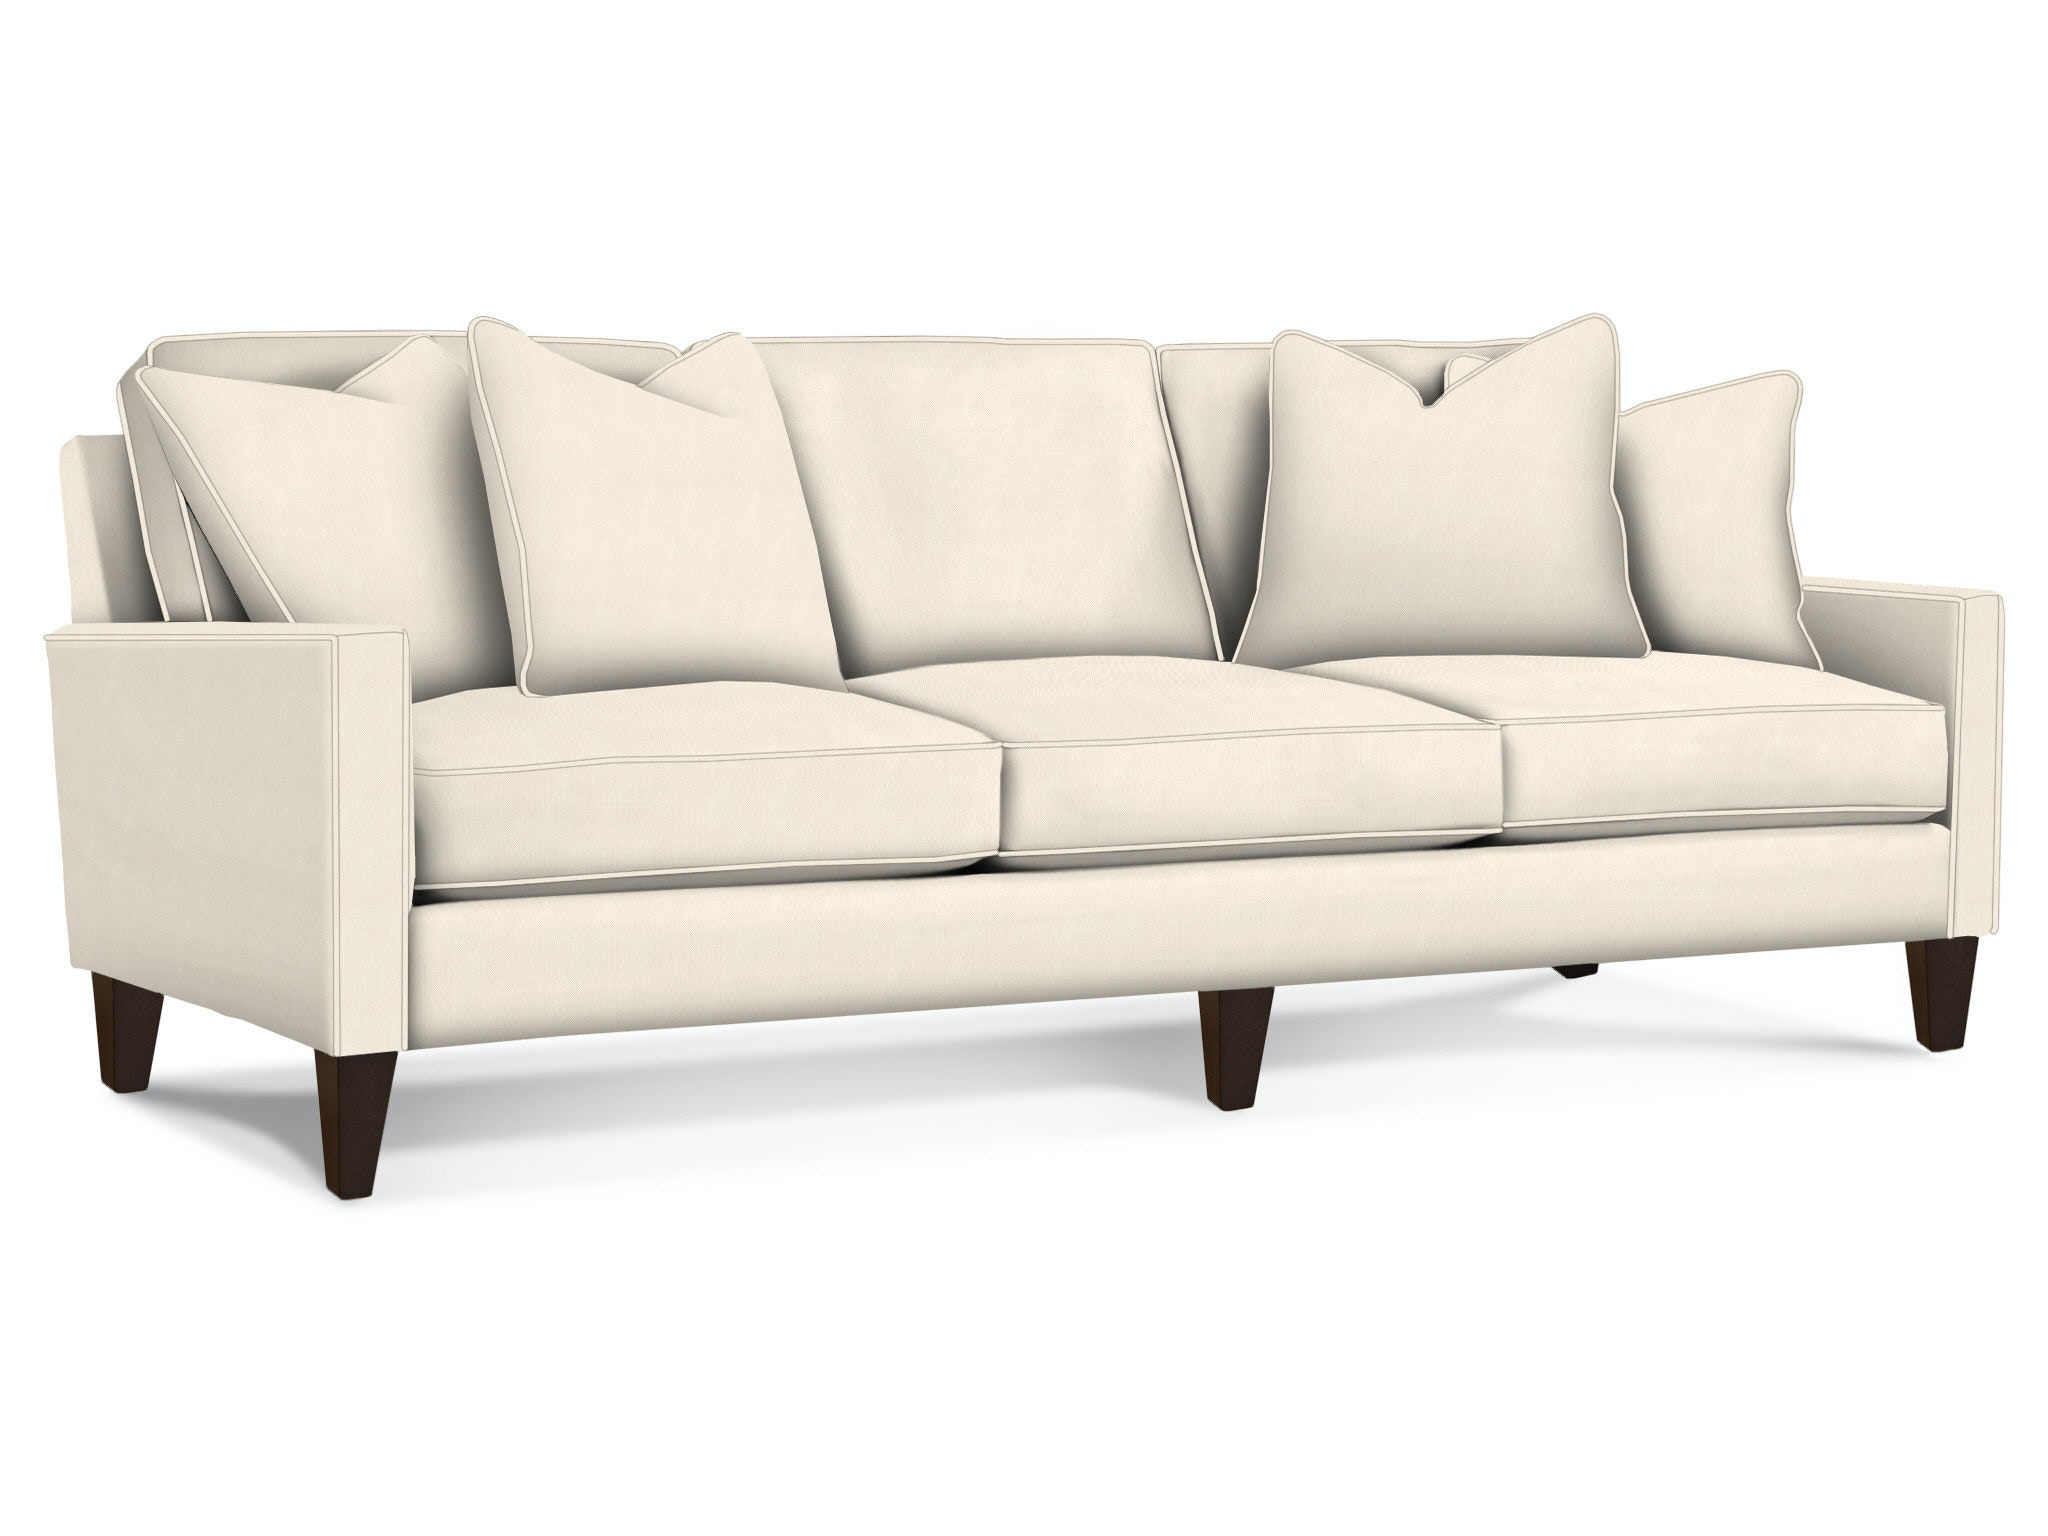 Braxton Culler Living Room Estate Sofa A312-0040